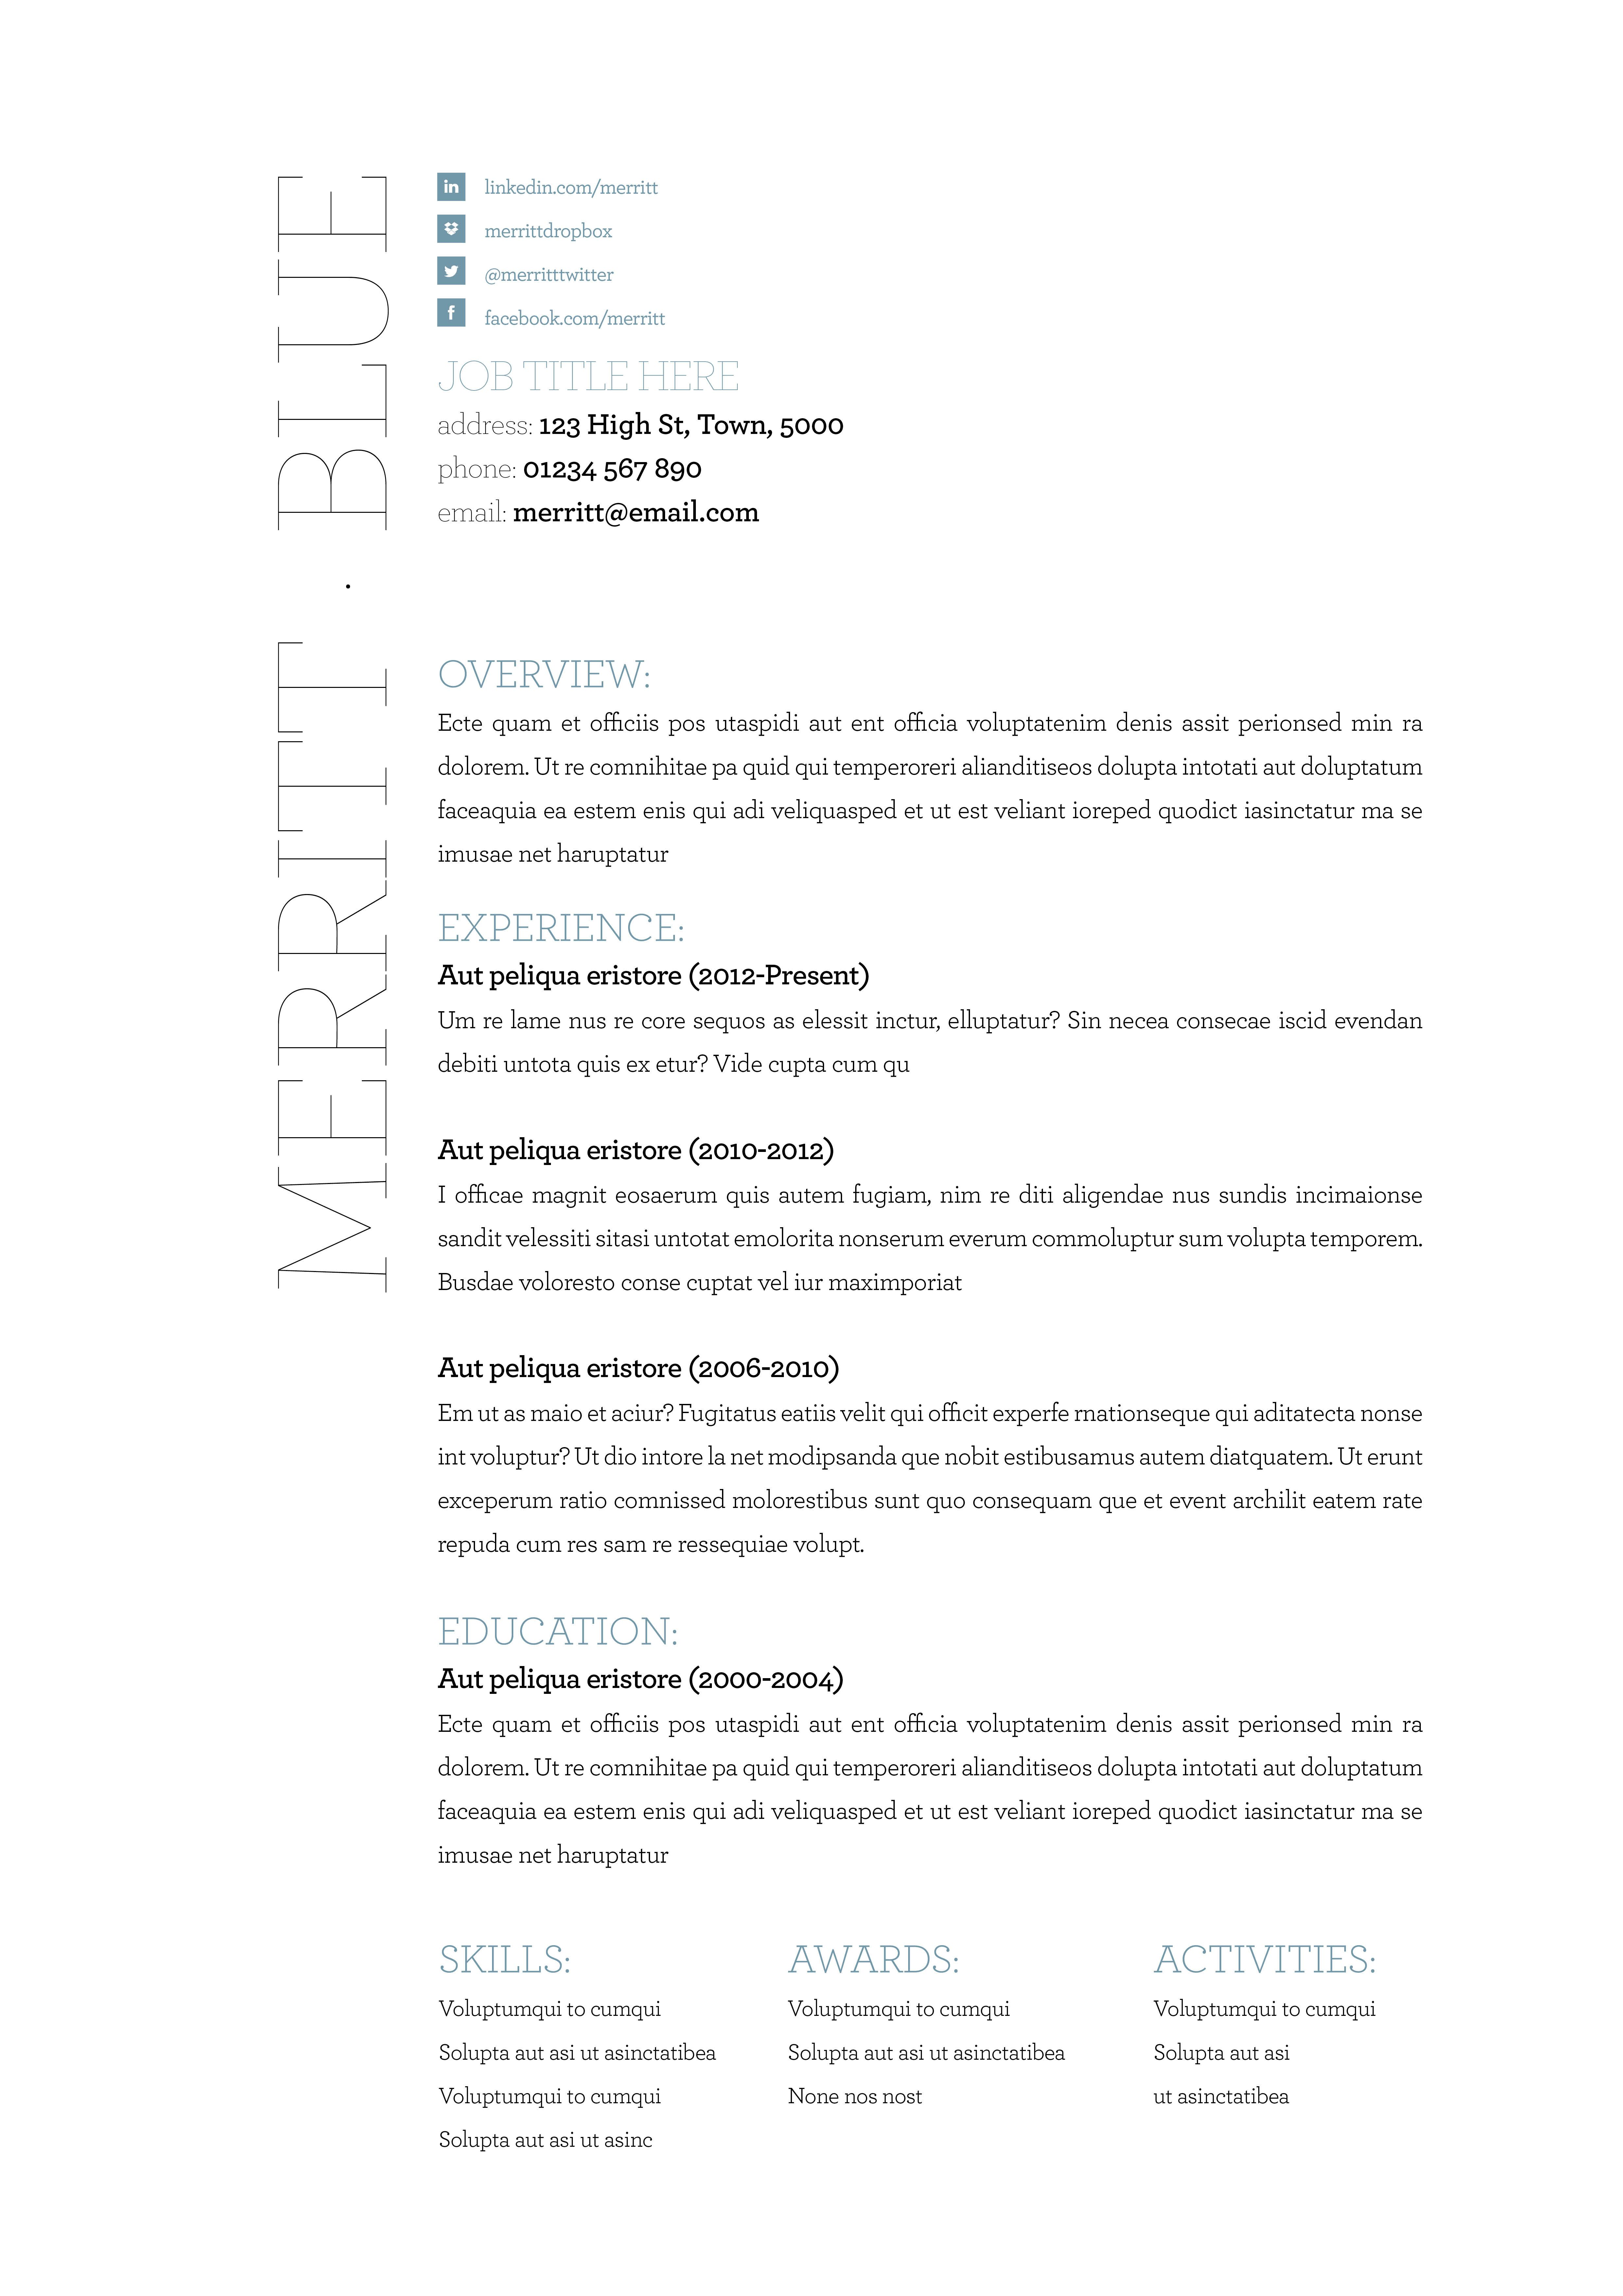 7 Different Resume Formats Resume Format in 2020